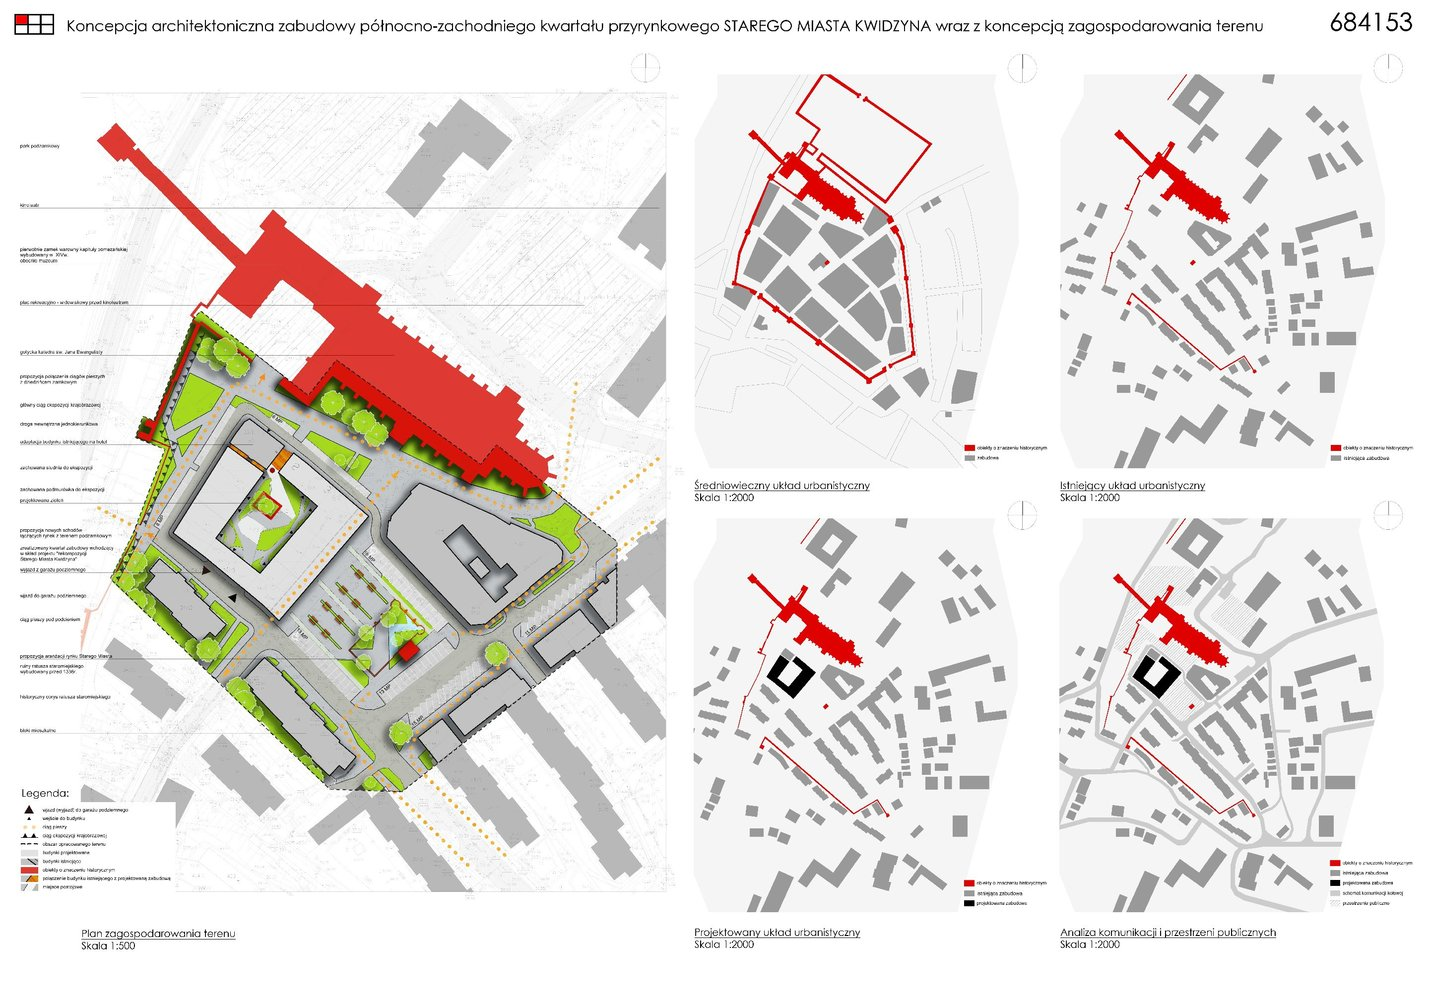 Gallery of kwidzyn old town housing proposal perspektywa 13 kwidzyn old town housing proposal perspektywasite plan and diagrams ccuart Images